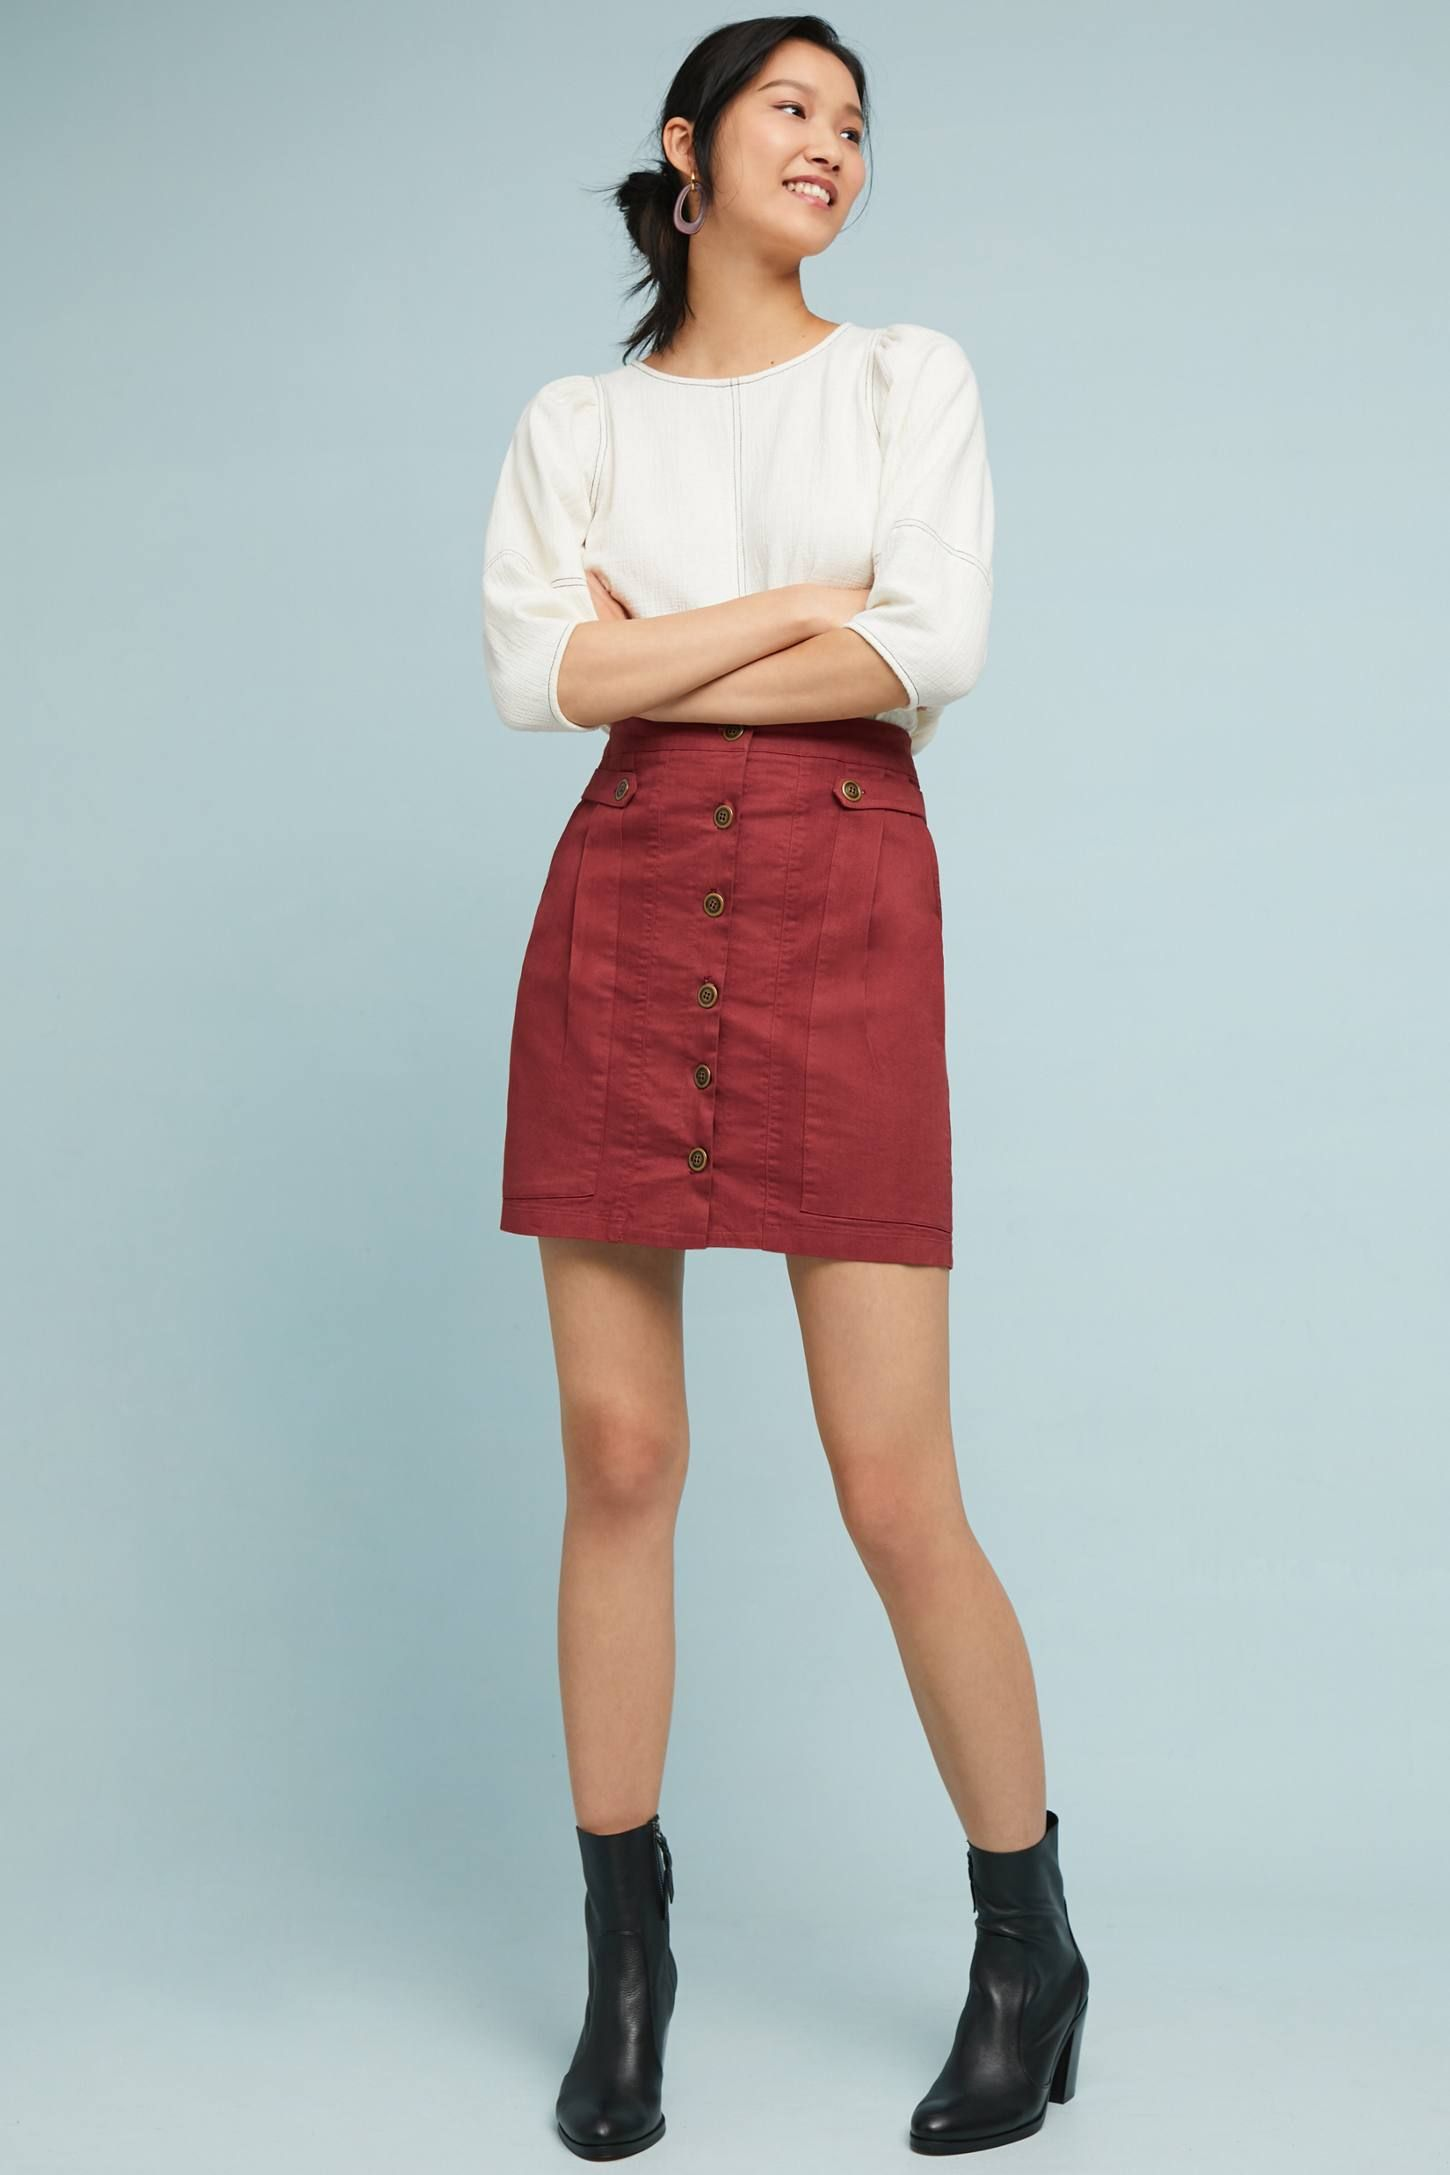 a49efbe96c Buttoned Utility Skirt | Wear What You Have | Skirts, Fashion ...